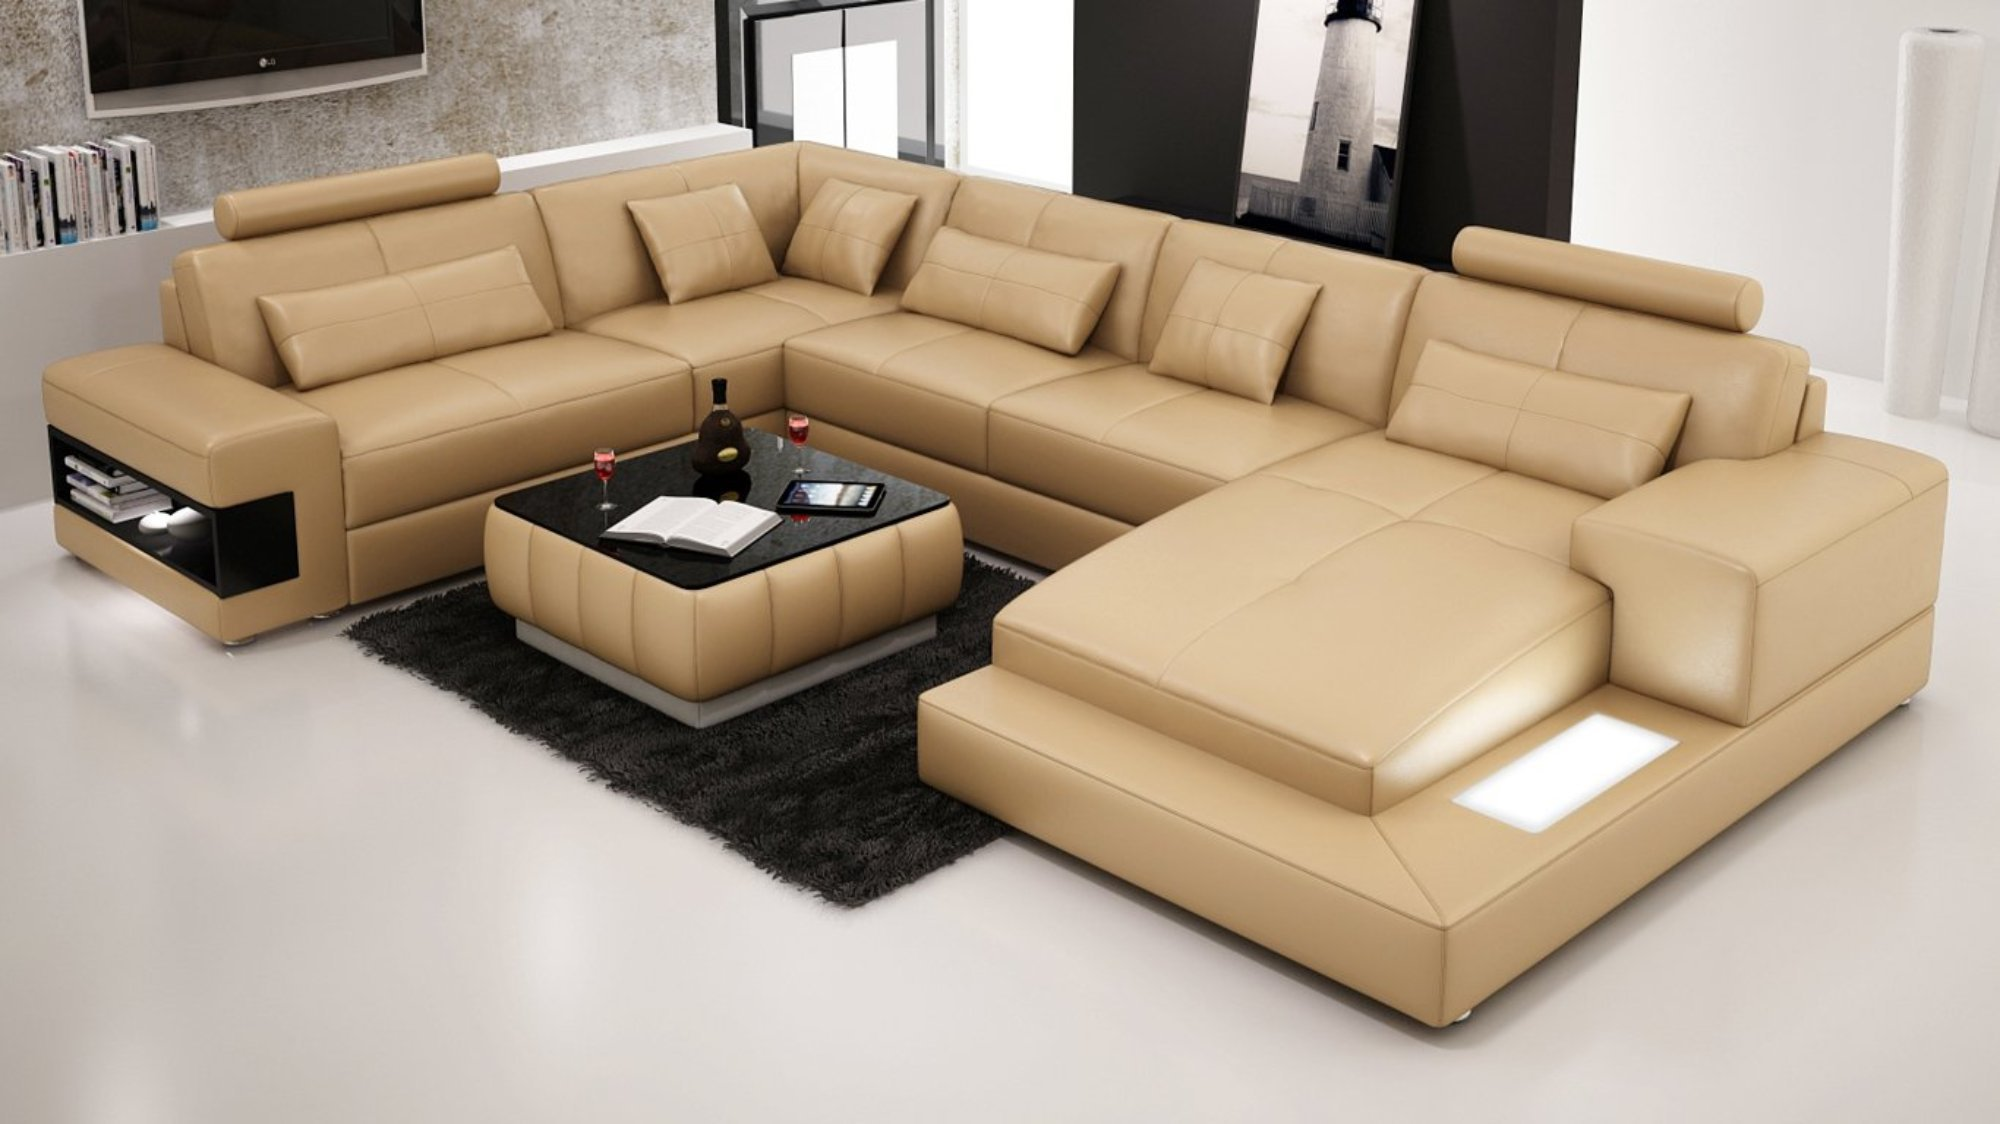 Designer Modern Large Leather Sofa Corner Suite New Settee Sandbeige Chaise To Review Leather Corner Sofa Corner Sofa Design Leather Sofa Living Room